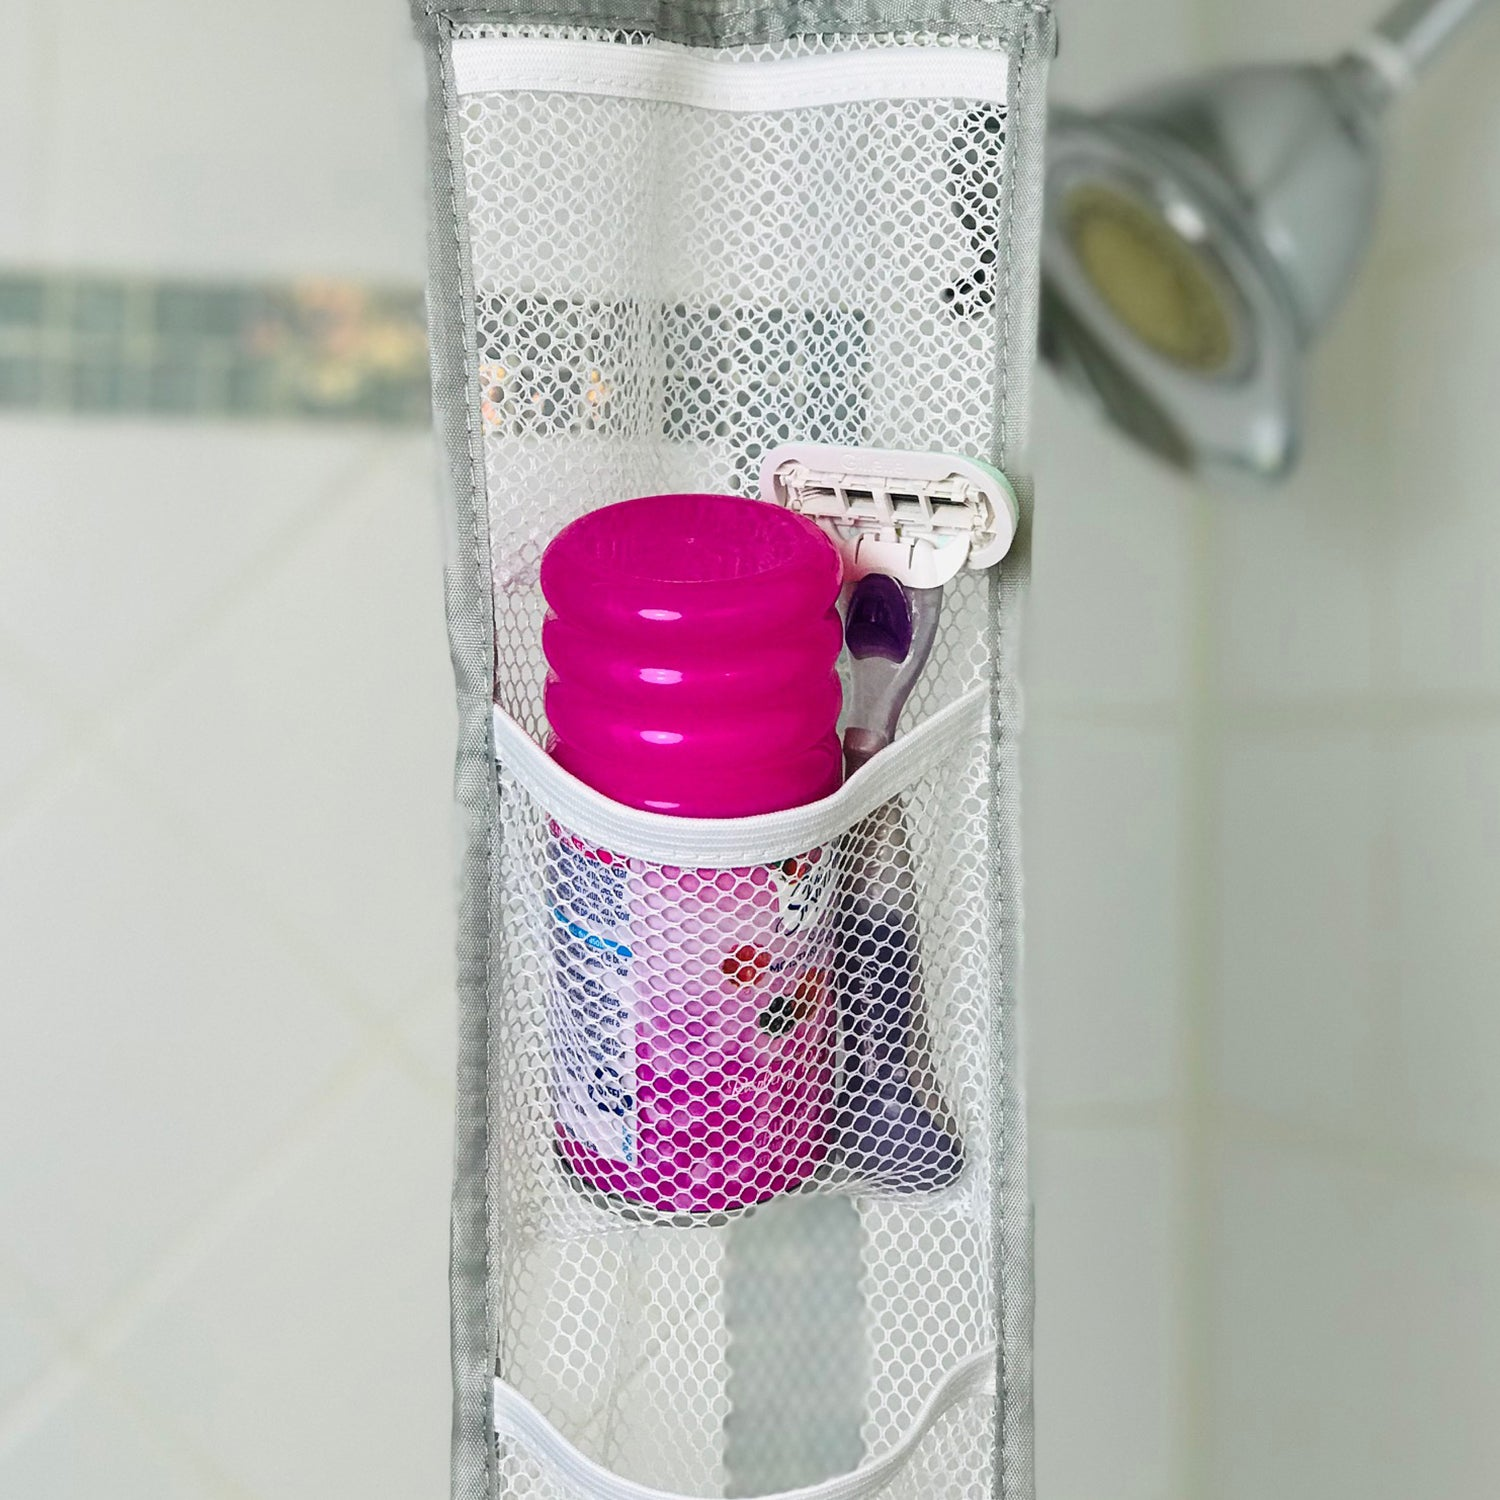 Hanging Shower Caddy Grand Fusion Housewares Inc